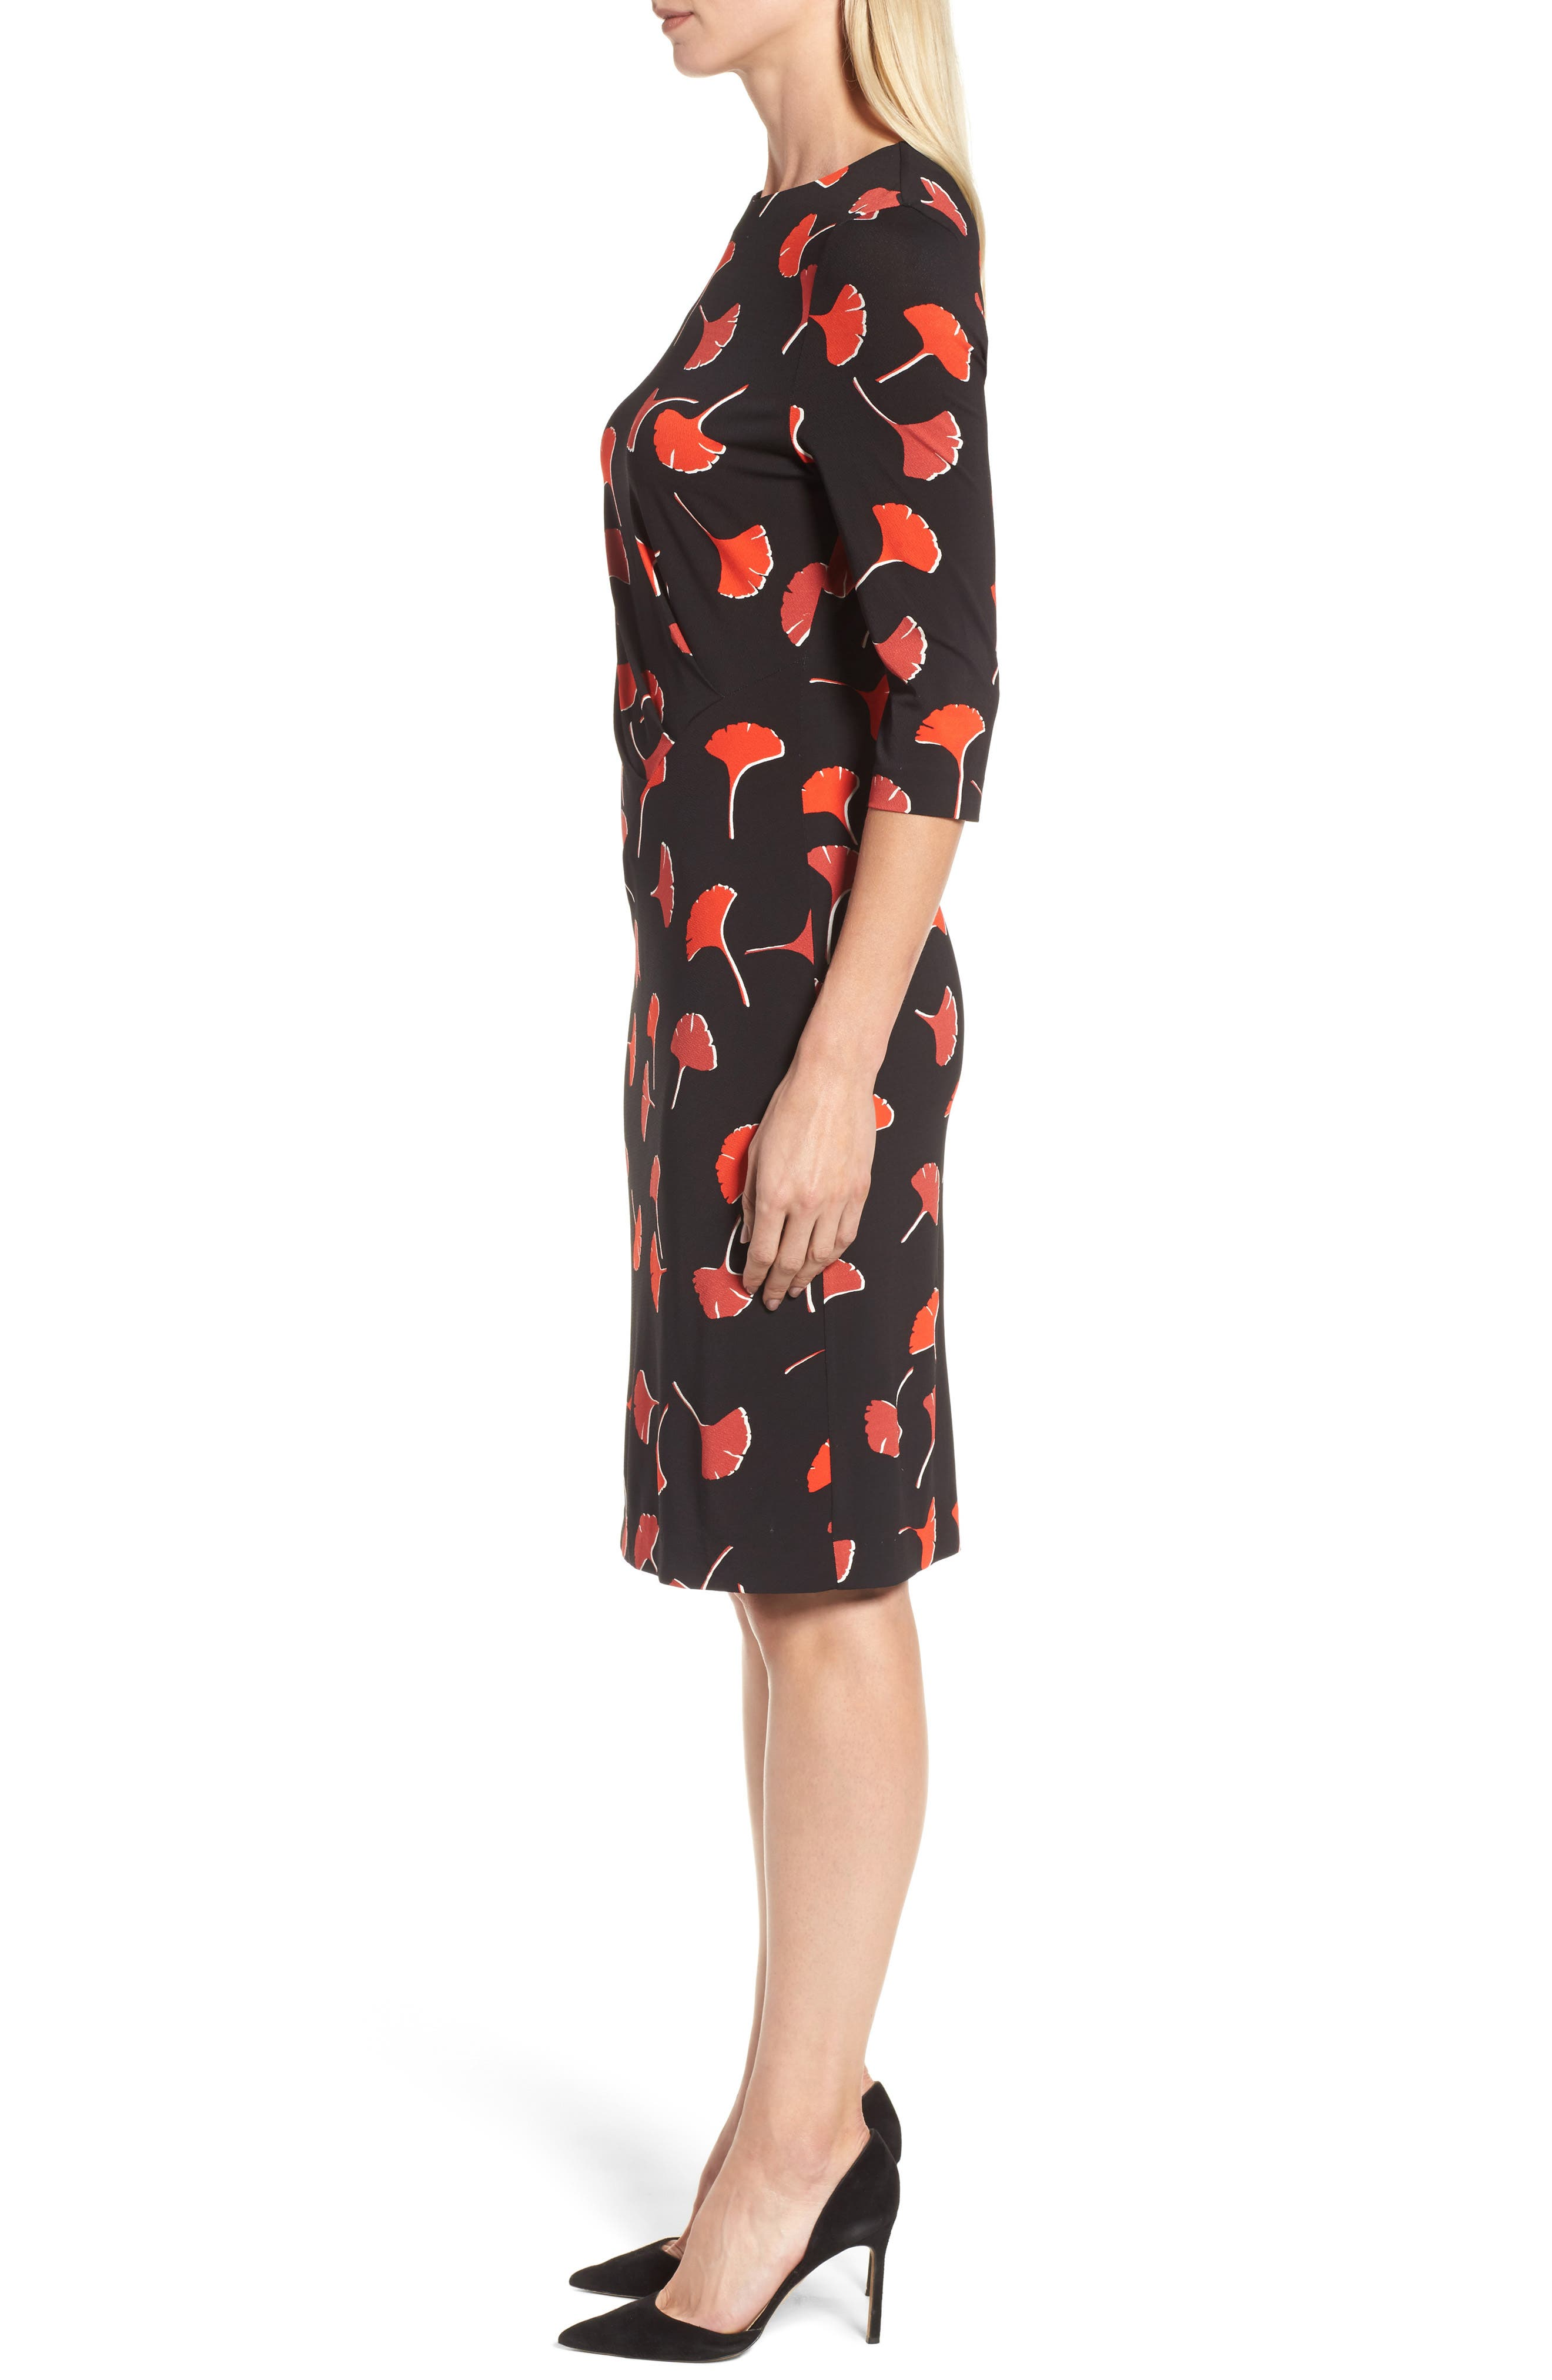 Eseona Print Sheath Dress,                             Alternate thumbnail 3, color,                             005